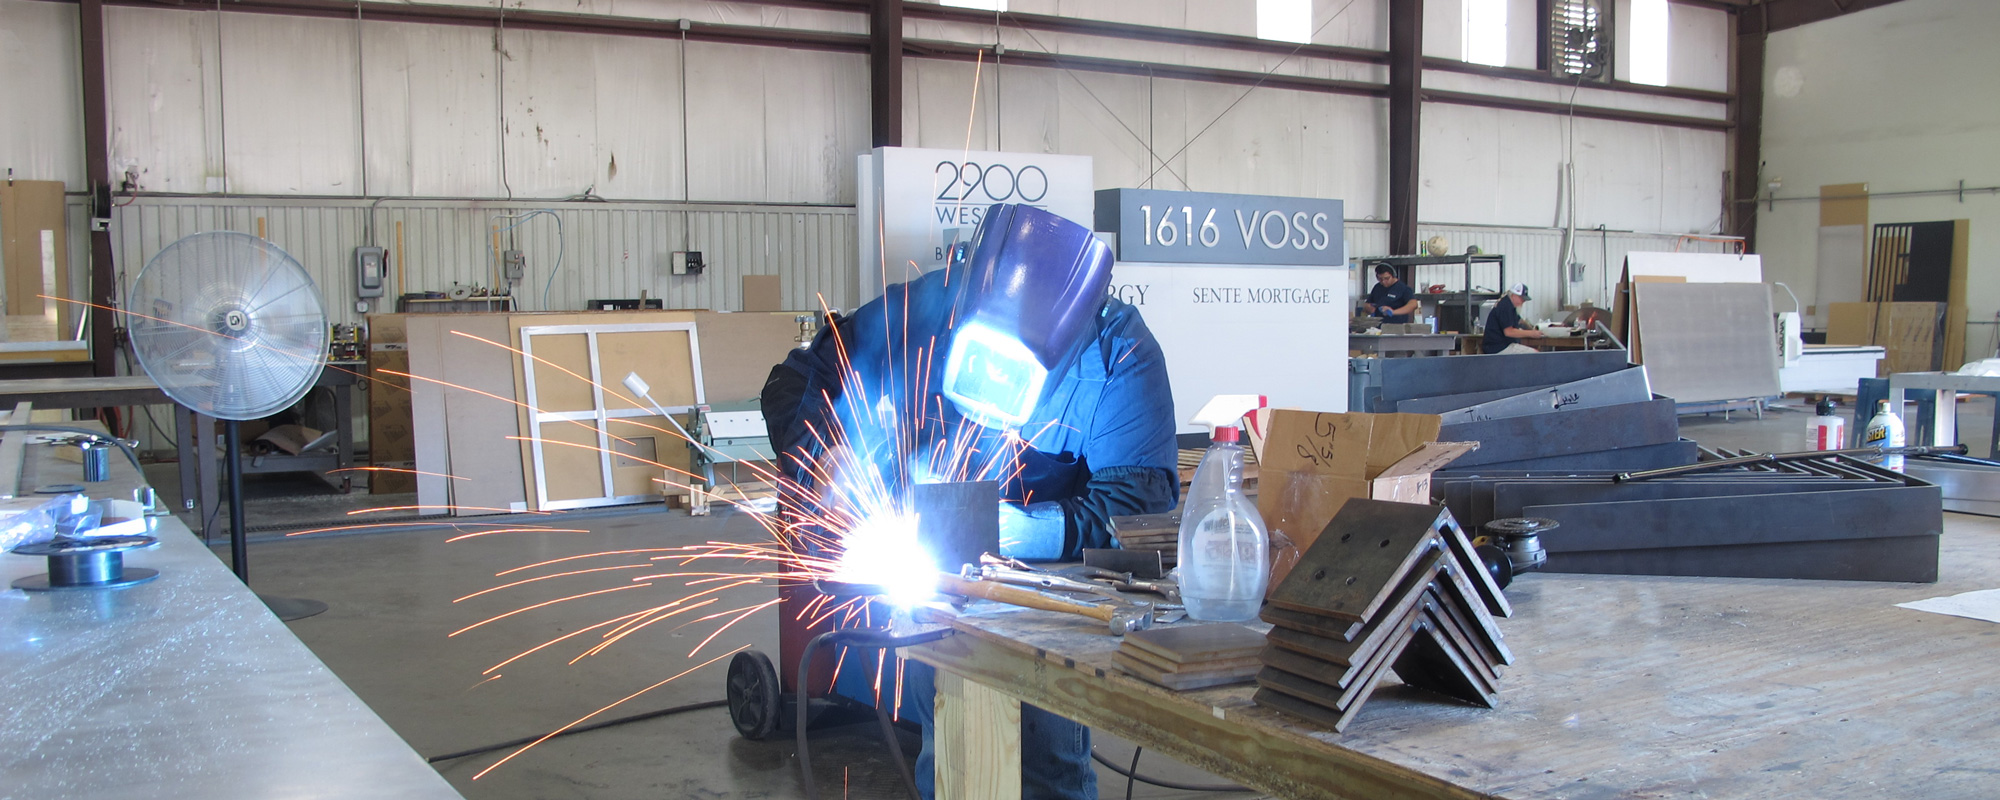 Fabricator welding at work table in manufacturing space